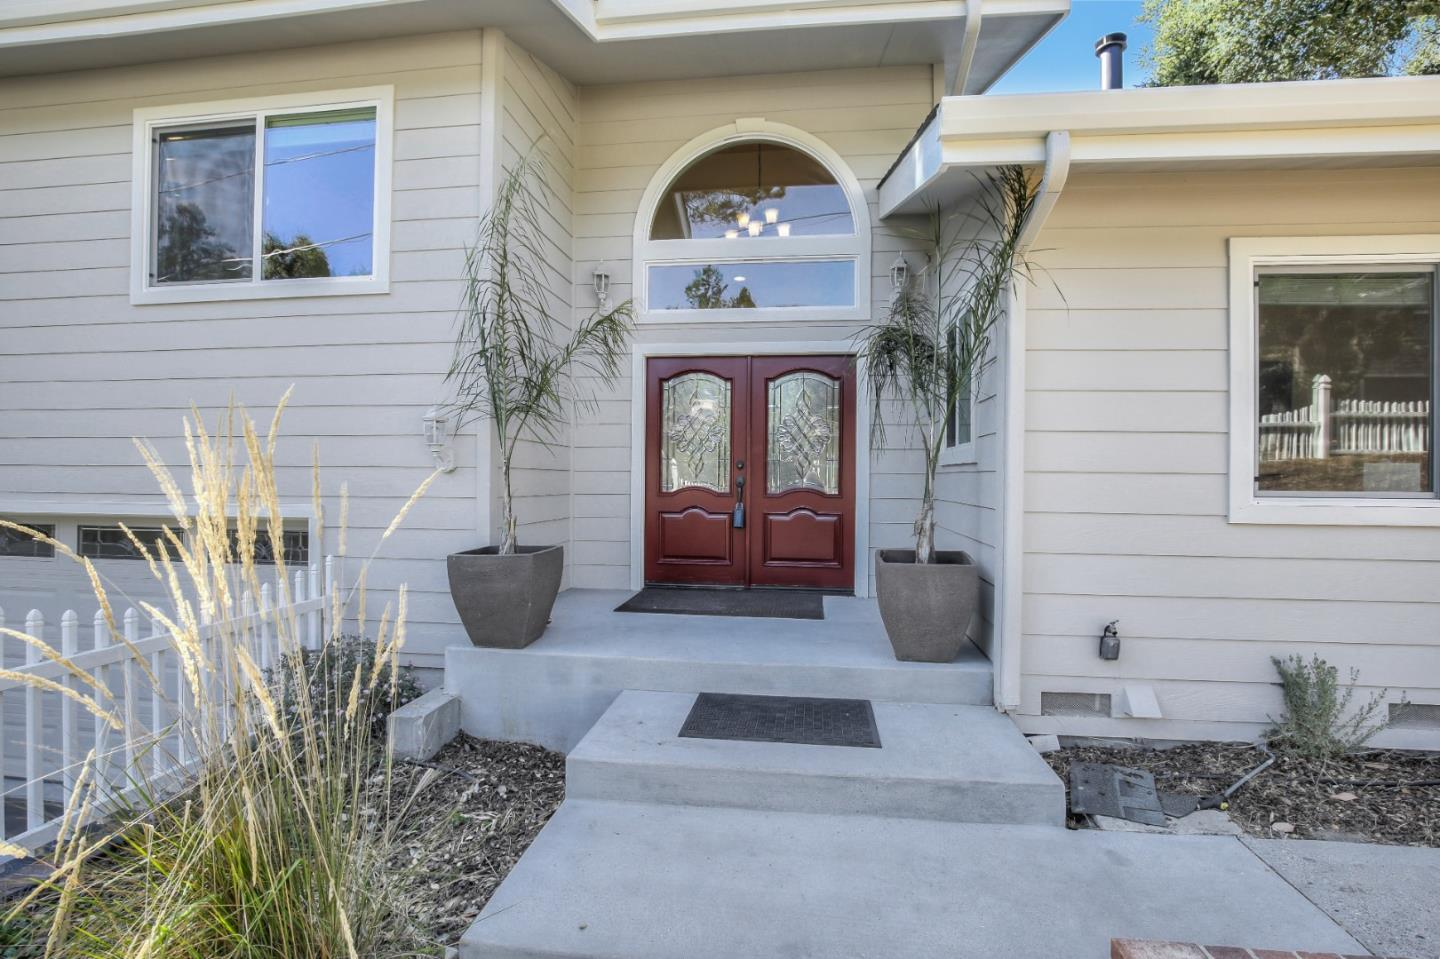 This Spectacular Ben Lomond property is boasting approximately 2,679 square feet and a huge 20,349 square foot lot in a fabulous neighborhood. The home was rebuilt in 2011 with the finest of materials and finishes. The large windows, sky lights and tall ceilings fill this home with natural sunlight. The kitchen is a chef's dream featuring high end cabinetry and Viking appliances. Youll always enjoy dining in the eat-in kitchen or dining room. The open floorplan is ideal for entertaining. Both the family room and living rooms have stunning wood floors, a fireplace and high ceilings. Relax in the master bedroom suite featuring large closets, soaking tub, oversized stall shower and a private deck. A separate entrance leads to a professionally soundproofed guest unit with one bedroom, one bathroom, laundry and a large private backyard. The properties oversized lot offers so much potential with possible ADU opportunity.